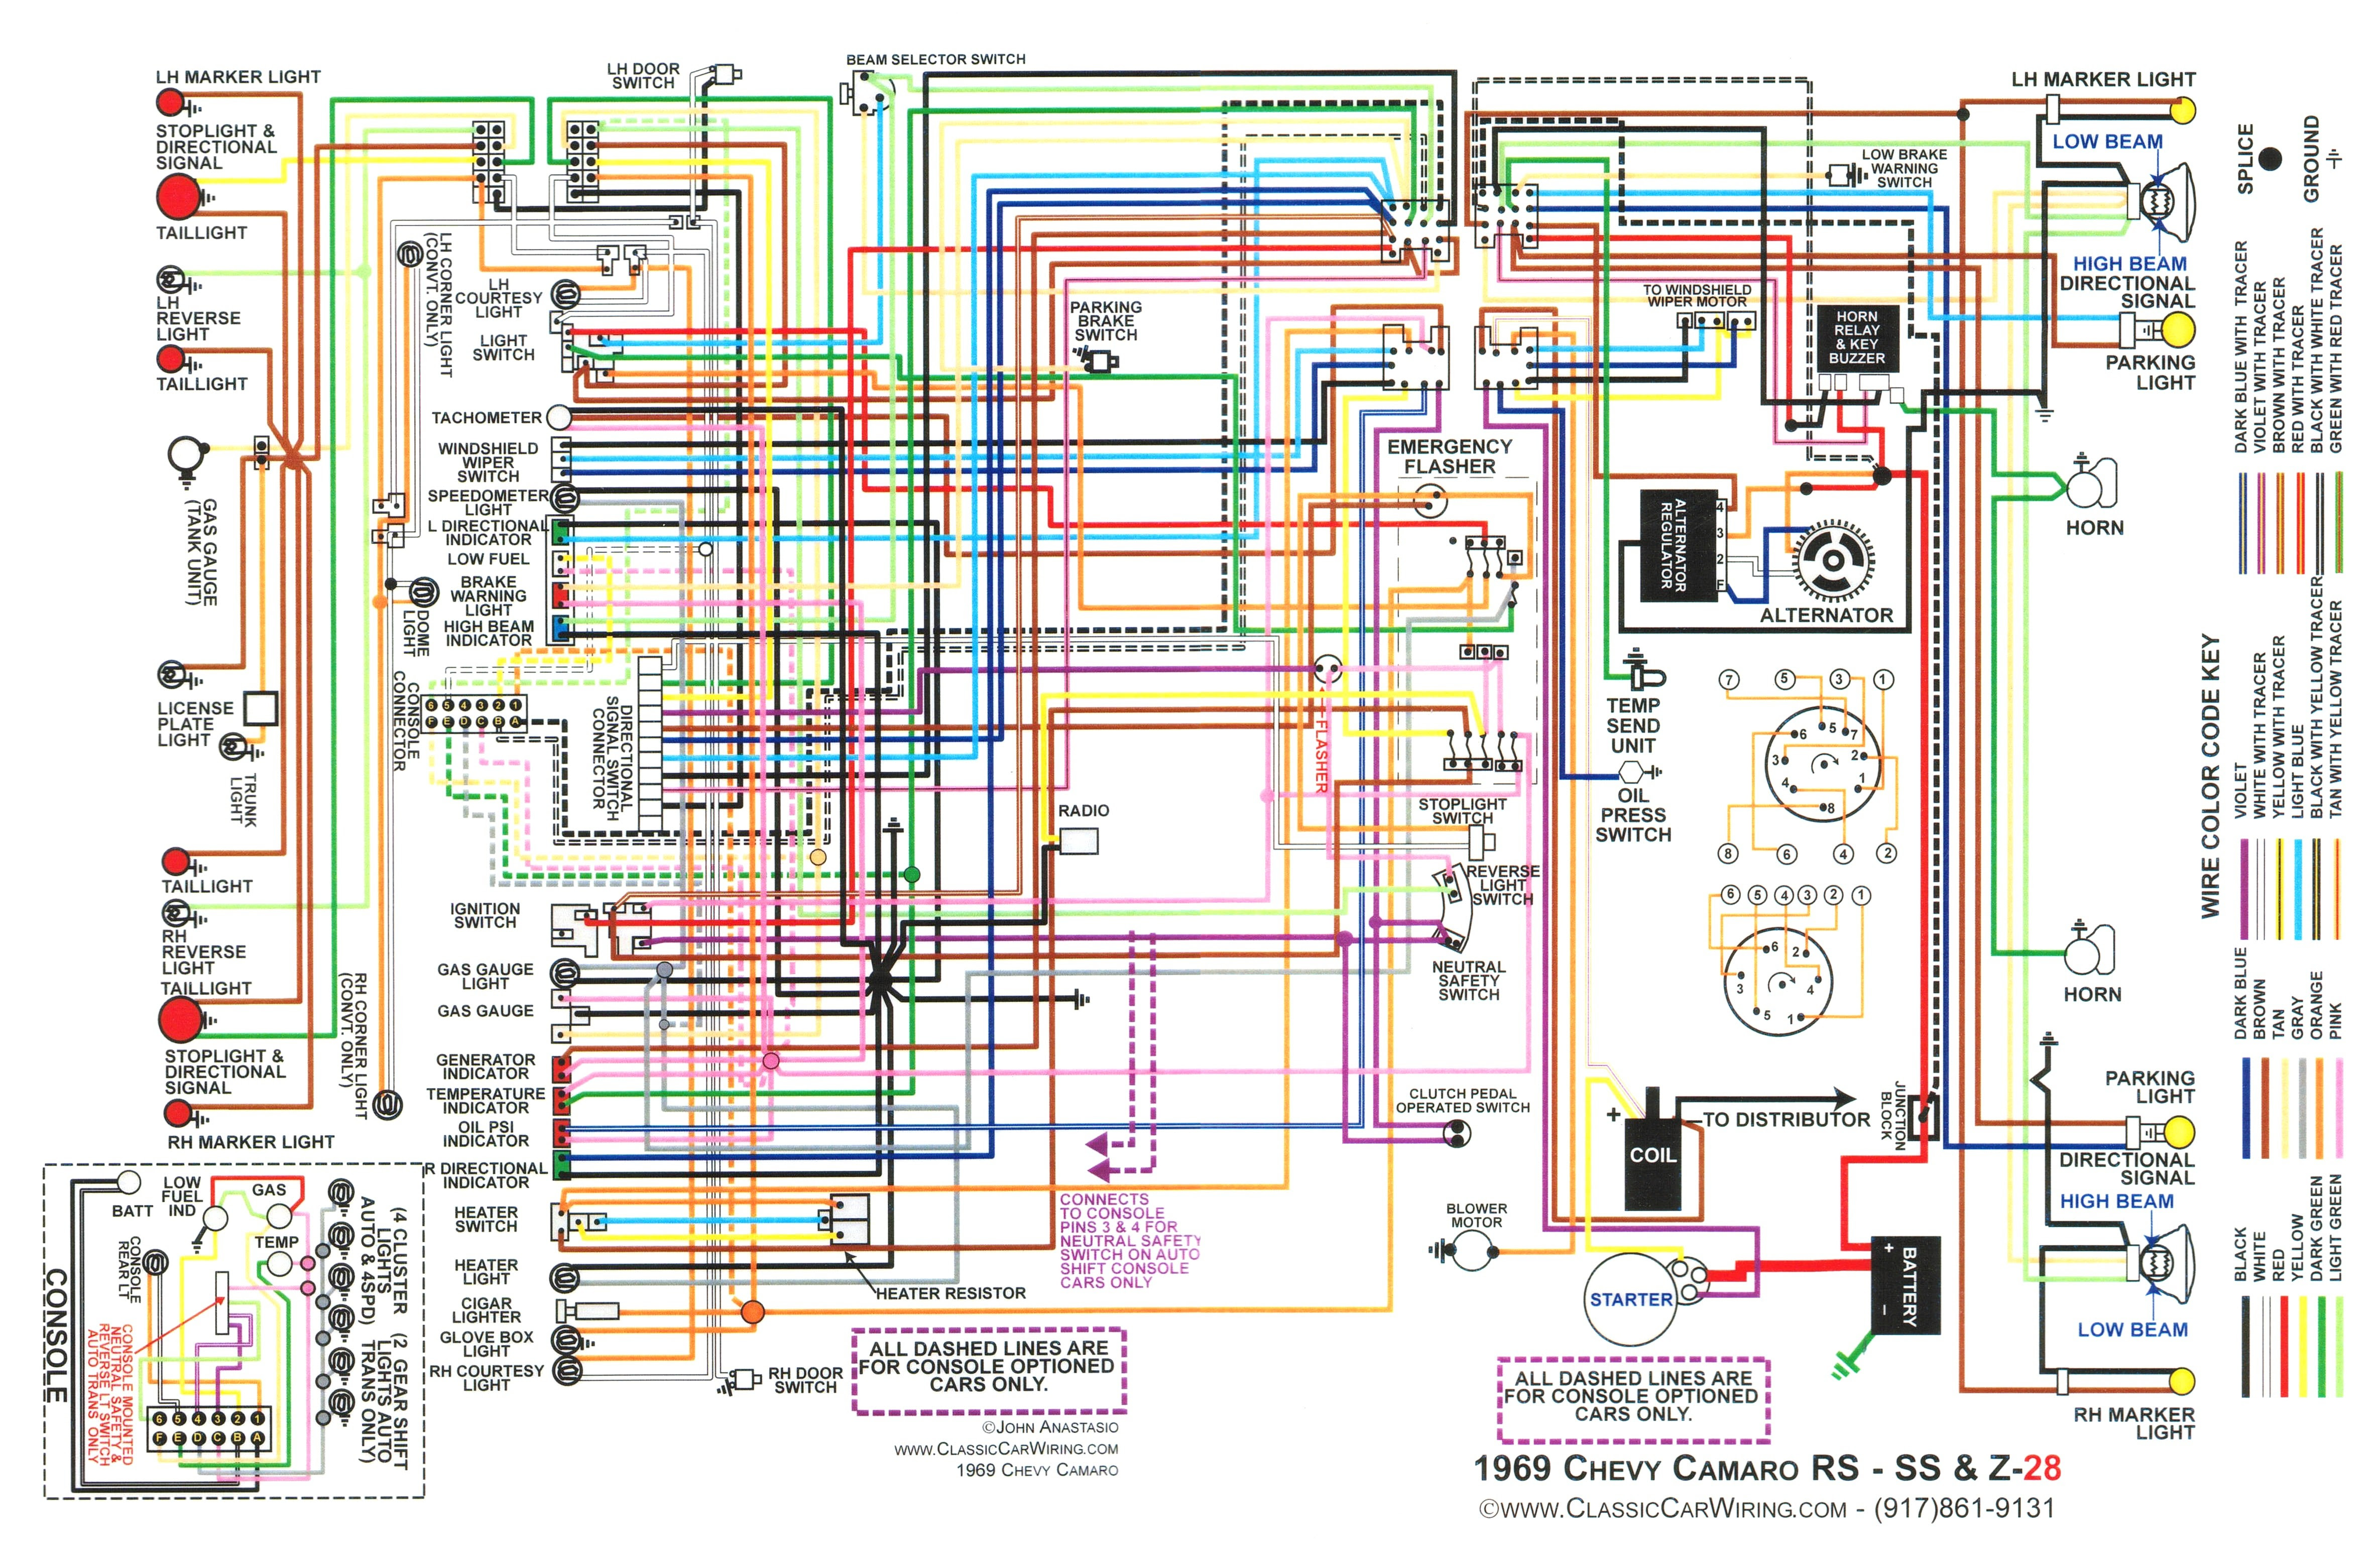 94 Caprice Starter Wiring Diagram - Wiring Diagram Networks